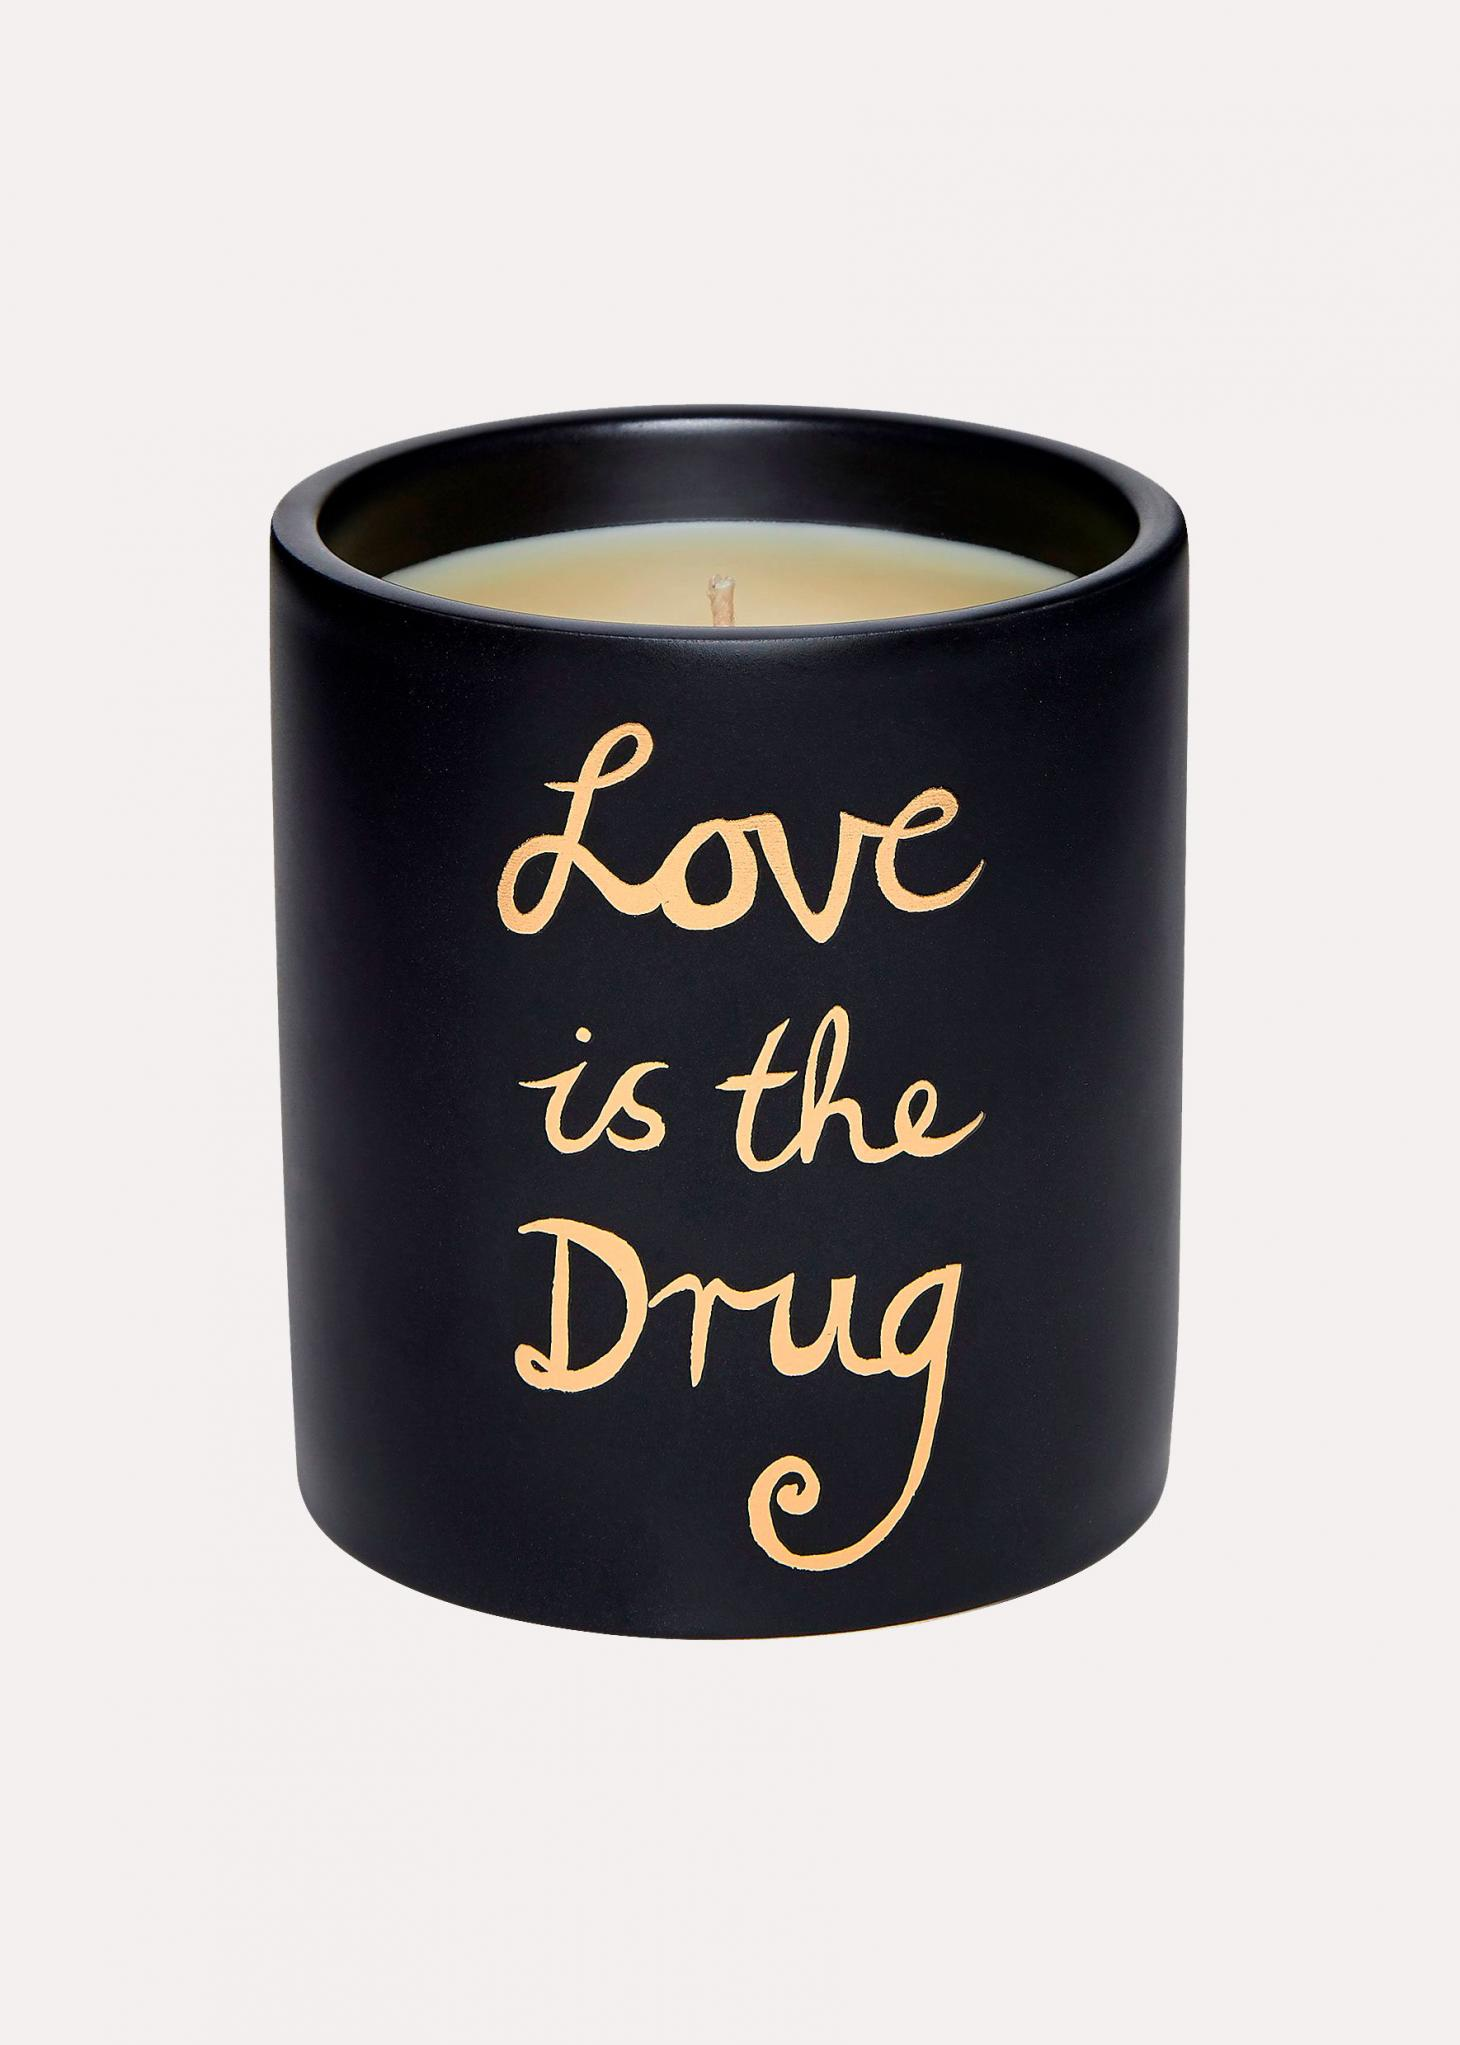 Bella Freud Love is the Drug candle against black background